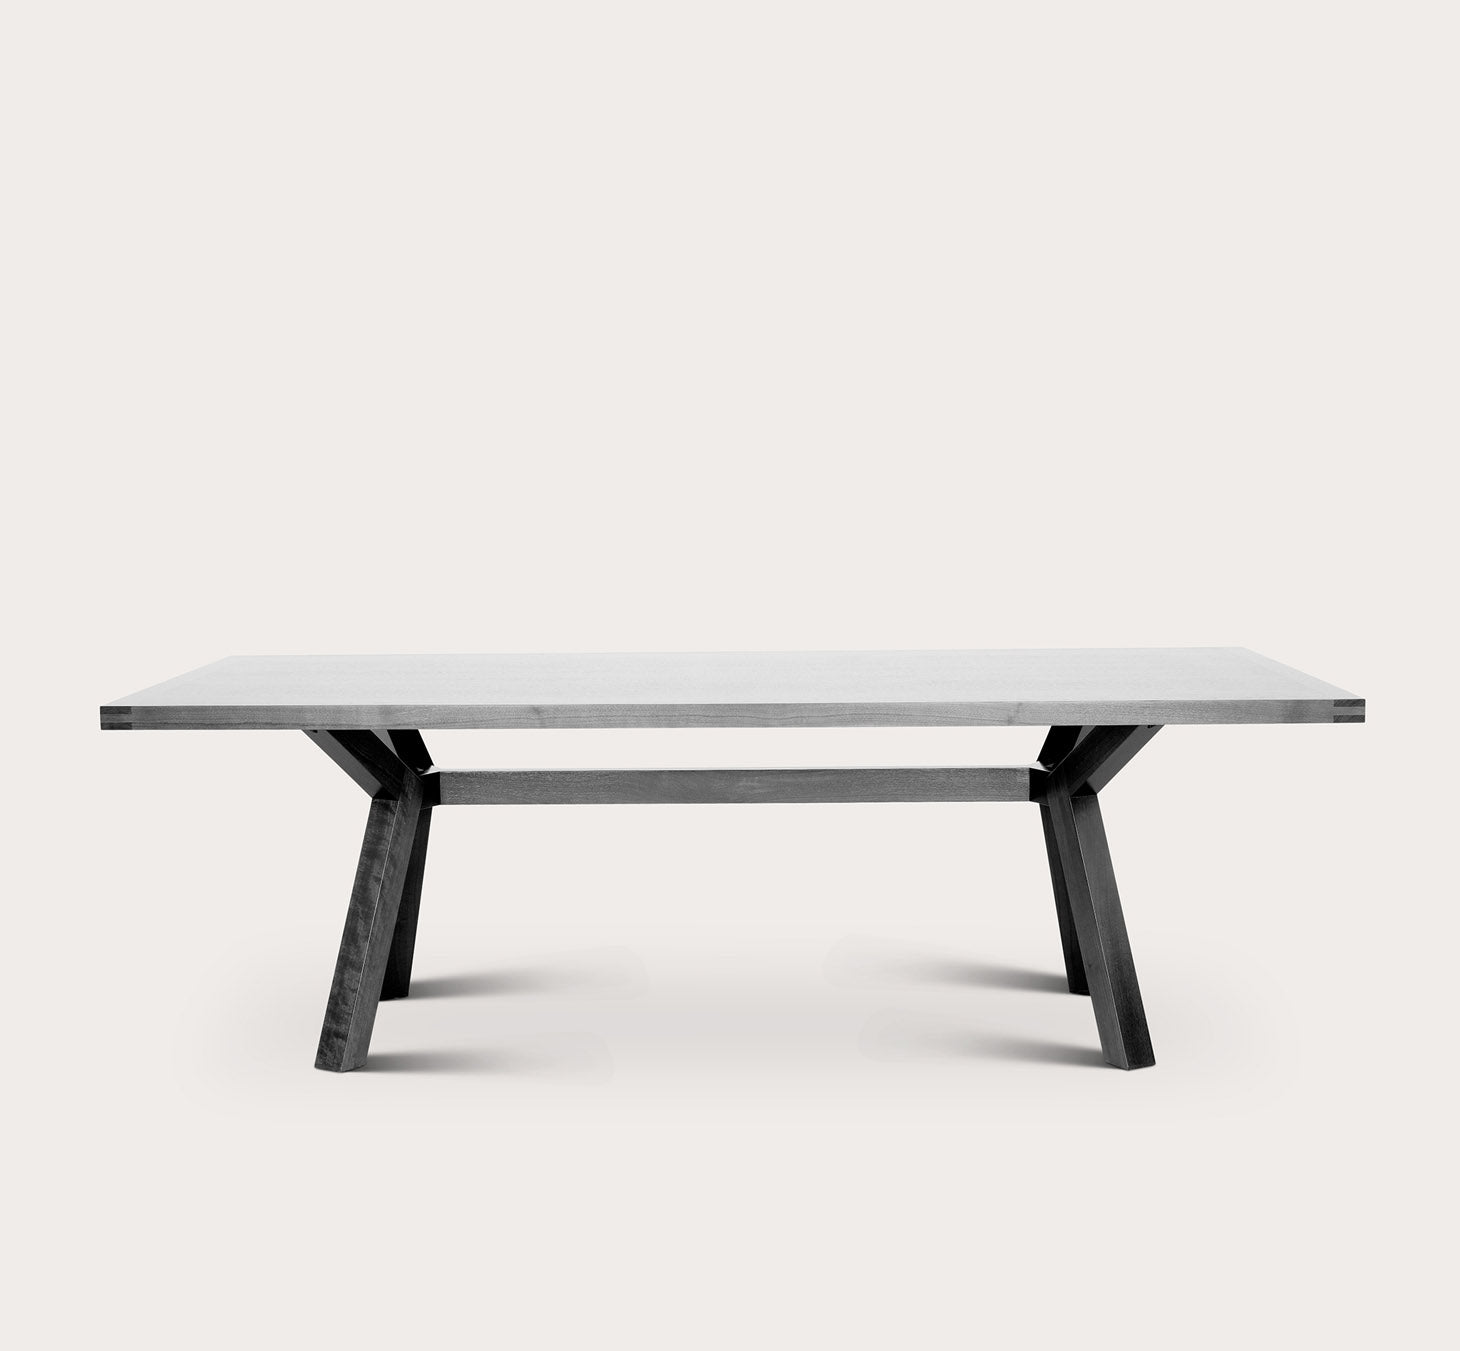 NUA Tables Christophe Delcourt Designer Furniture Sku: 008-230-10418